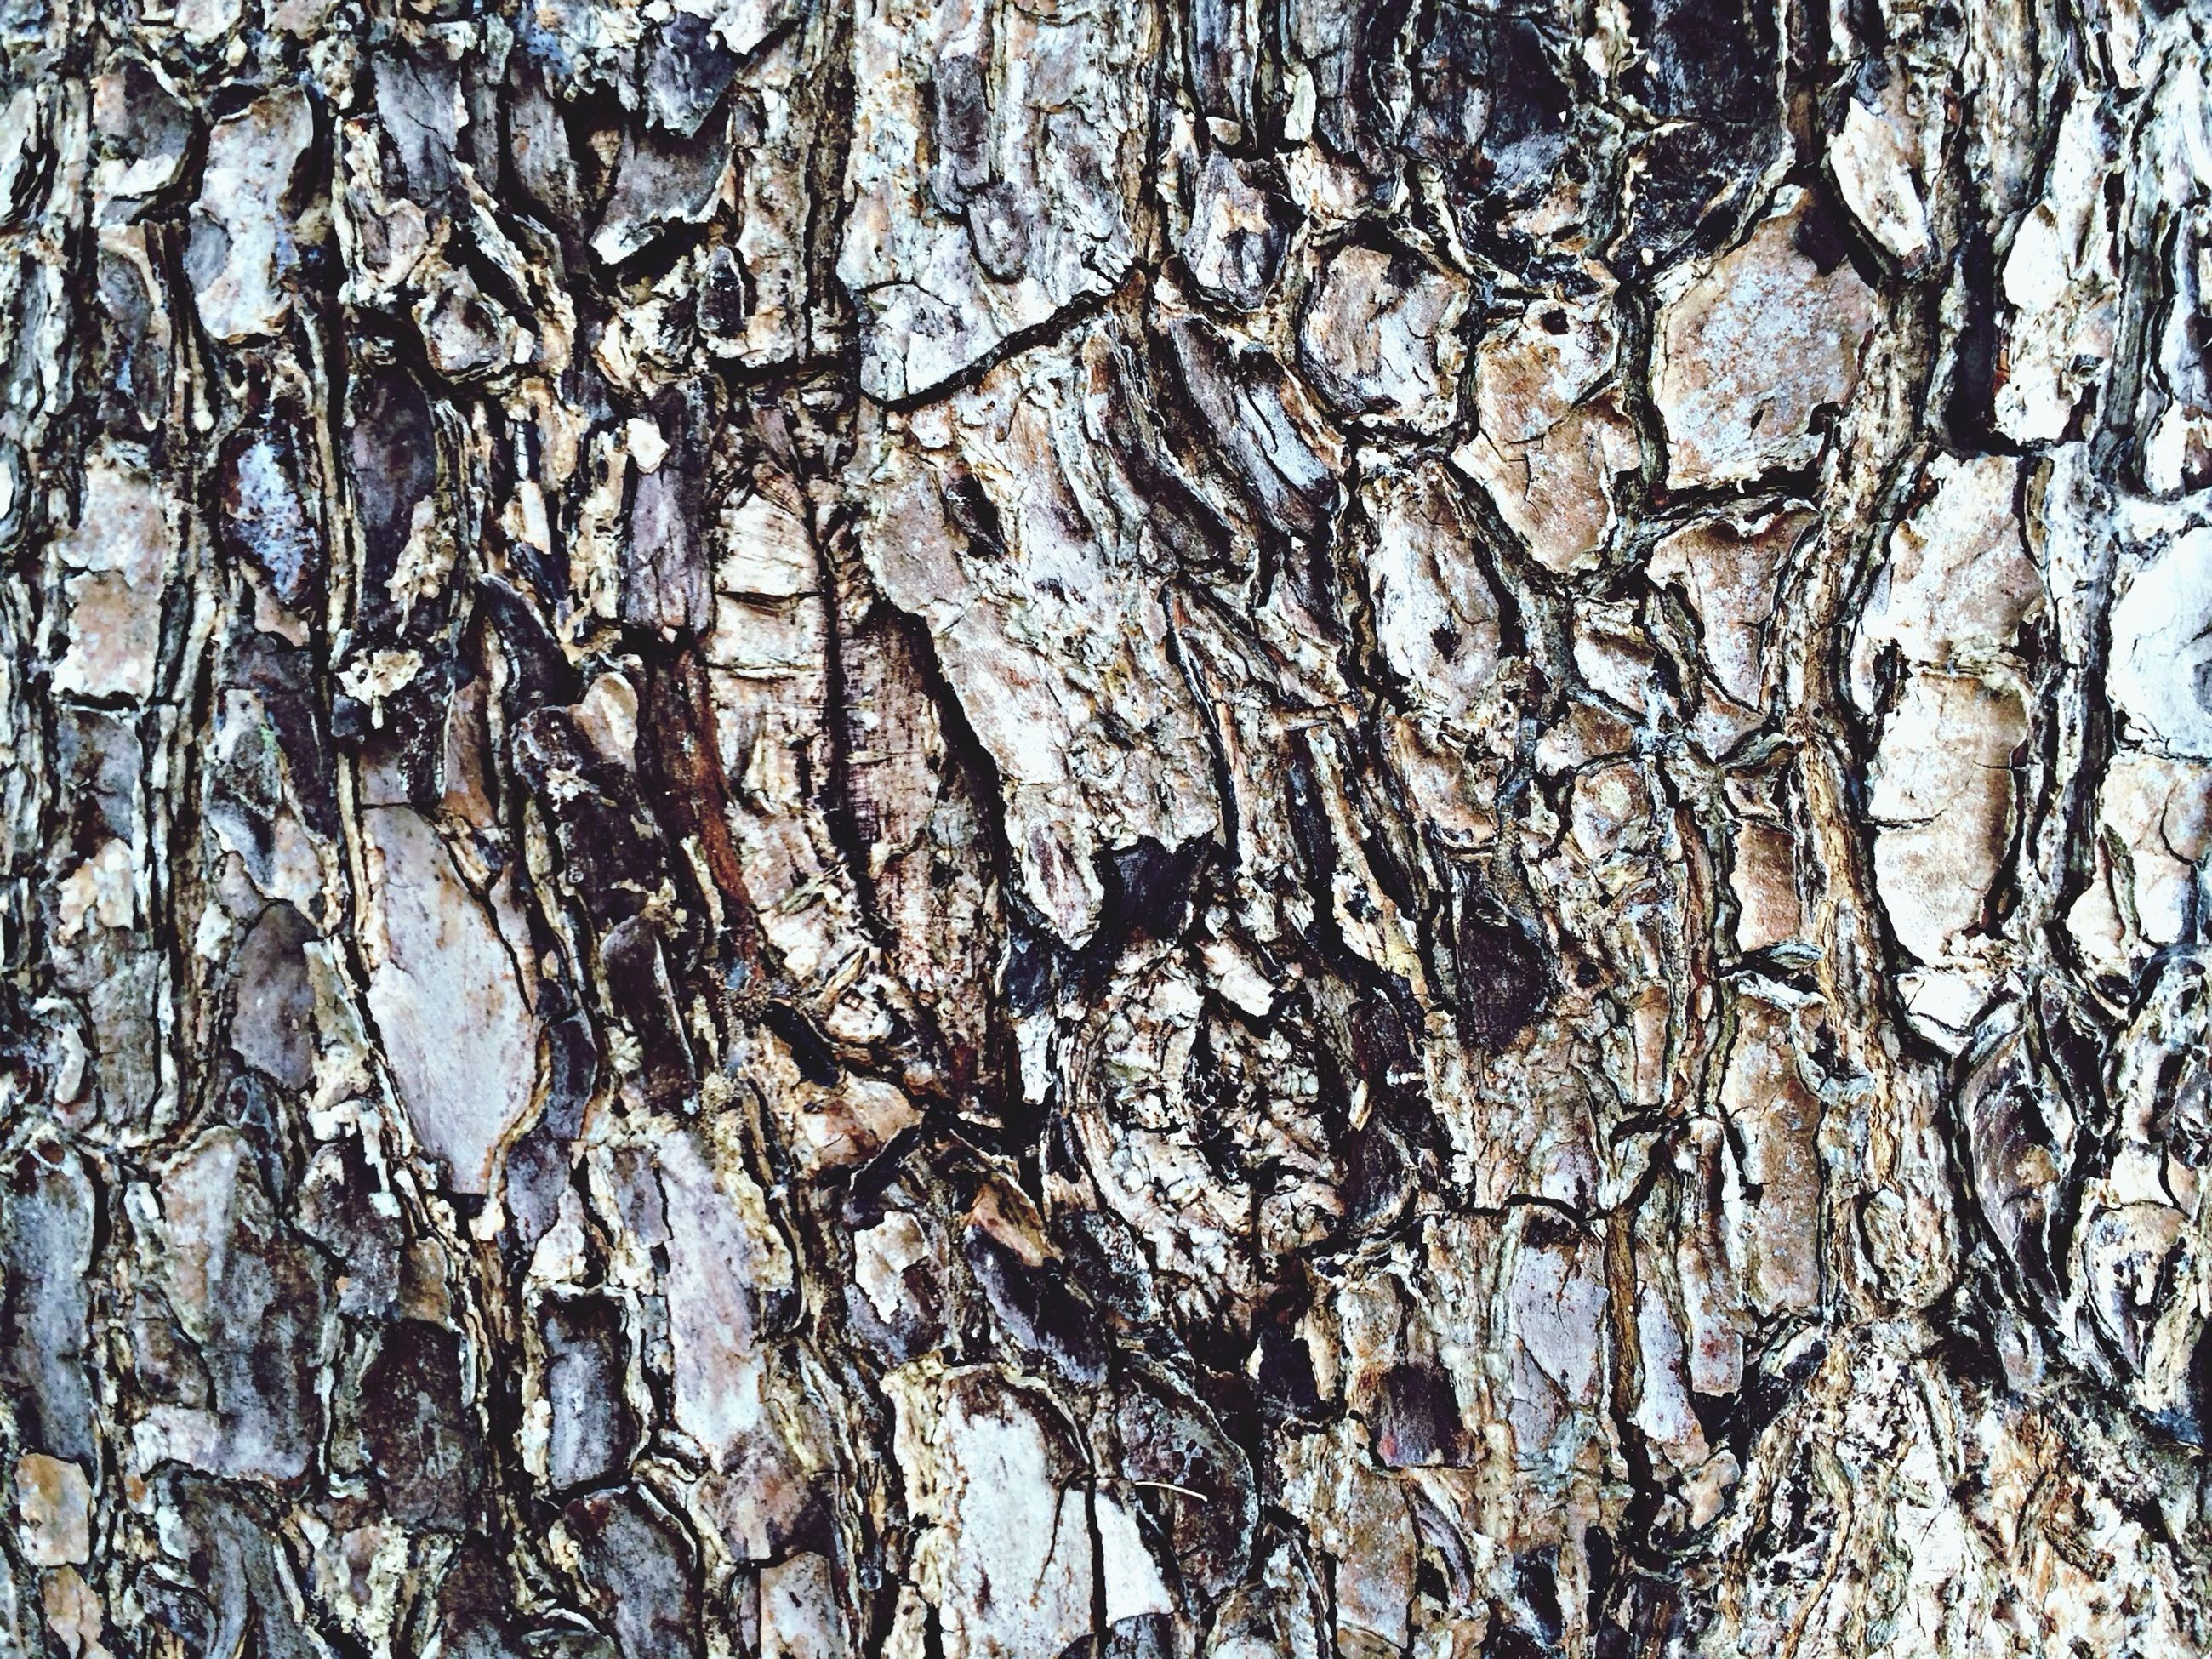 full frame, backgrounds, textured, tree trunk, tree, rough, branch, low angle view, bark, pattern, nature, natural pattern, close-up, bare tree, day, cracked, tranquility, outdoors, growth, no people